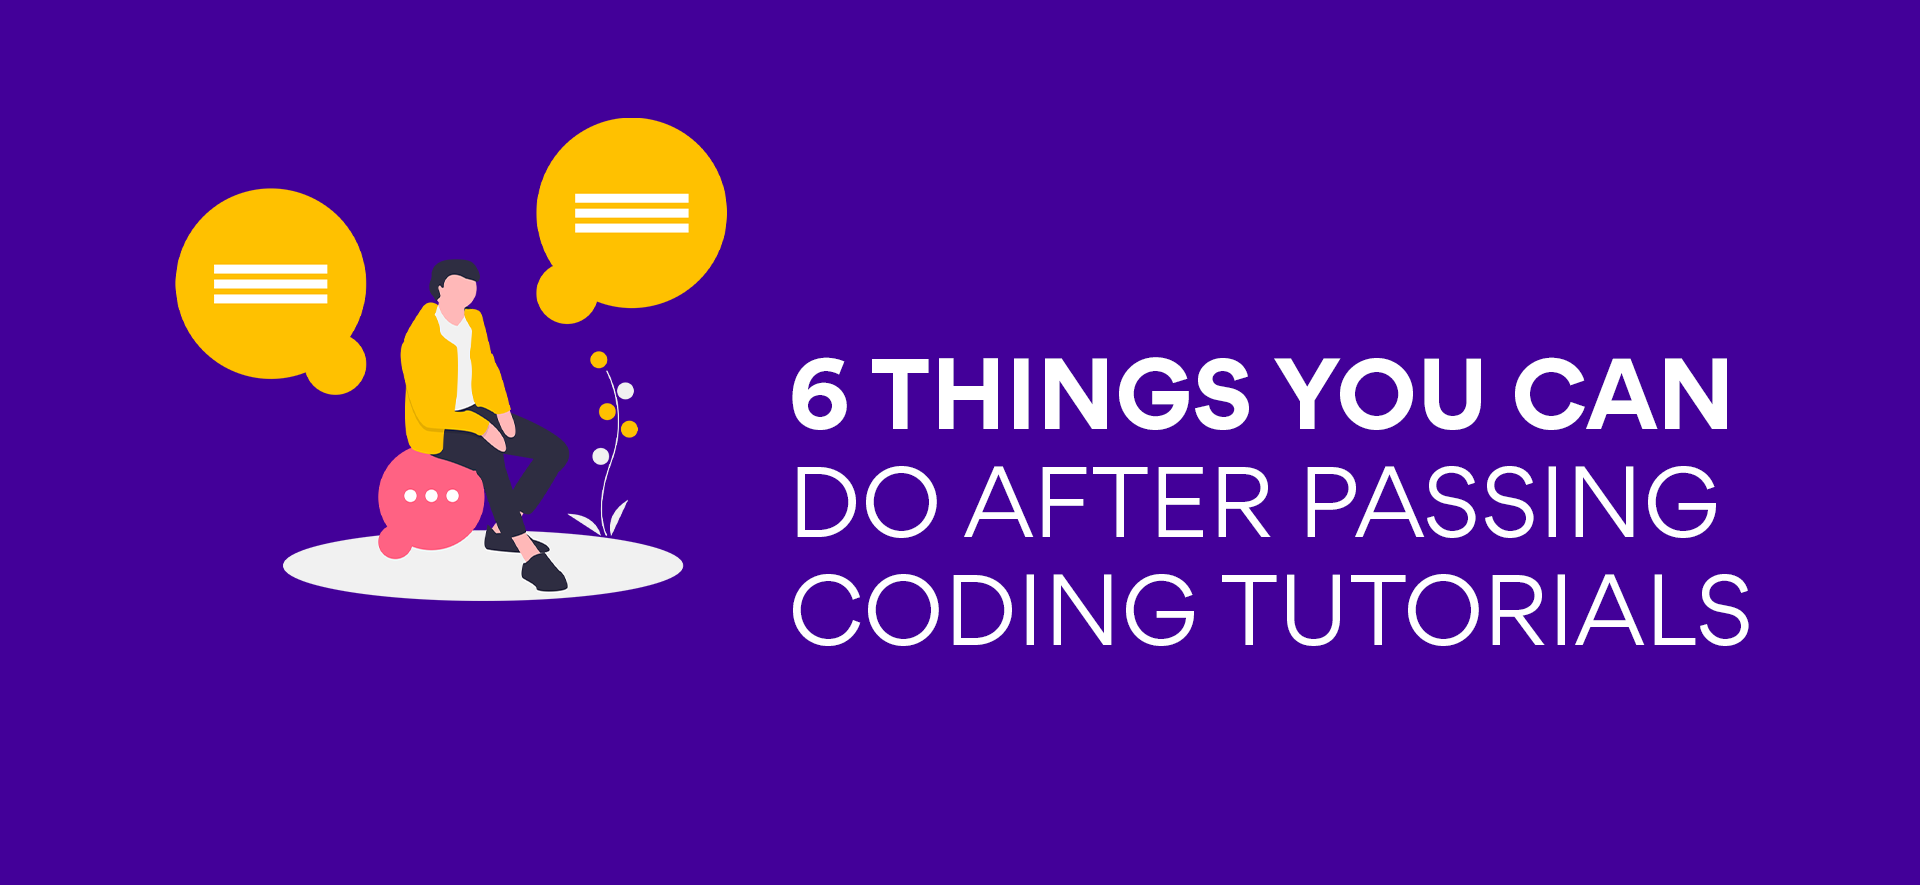 6 Things You Can DoAfter Passing Coding Tutorials